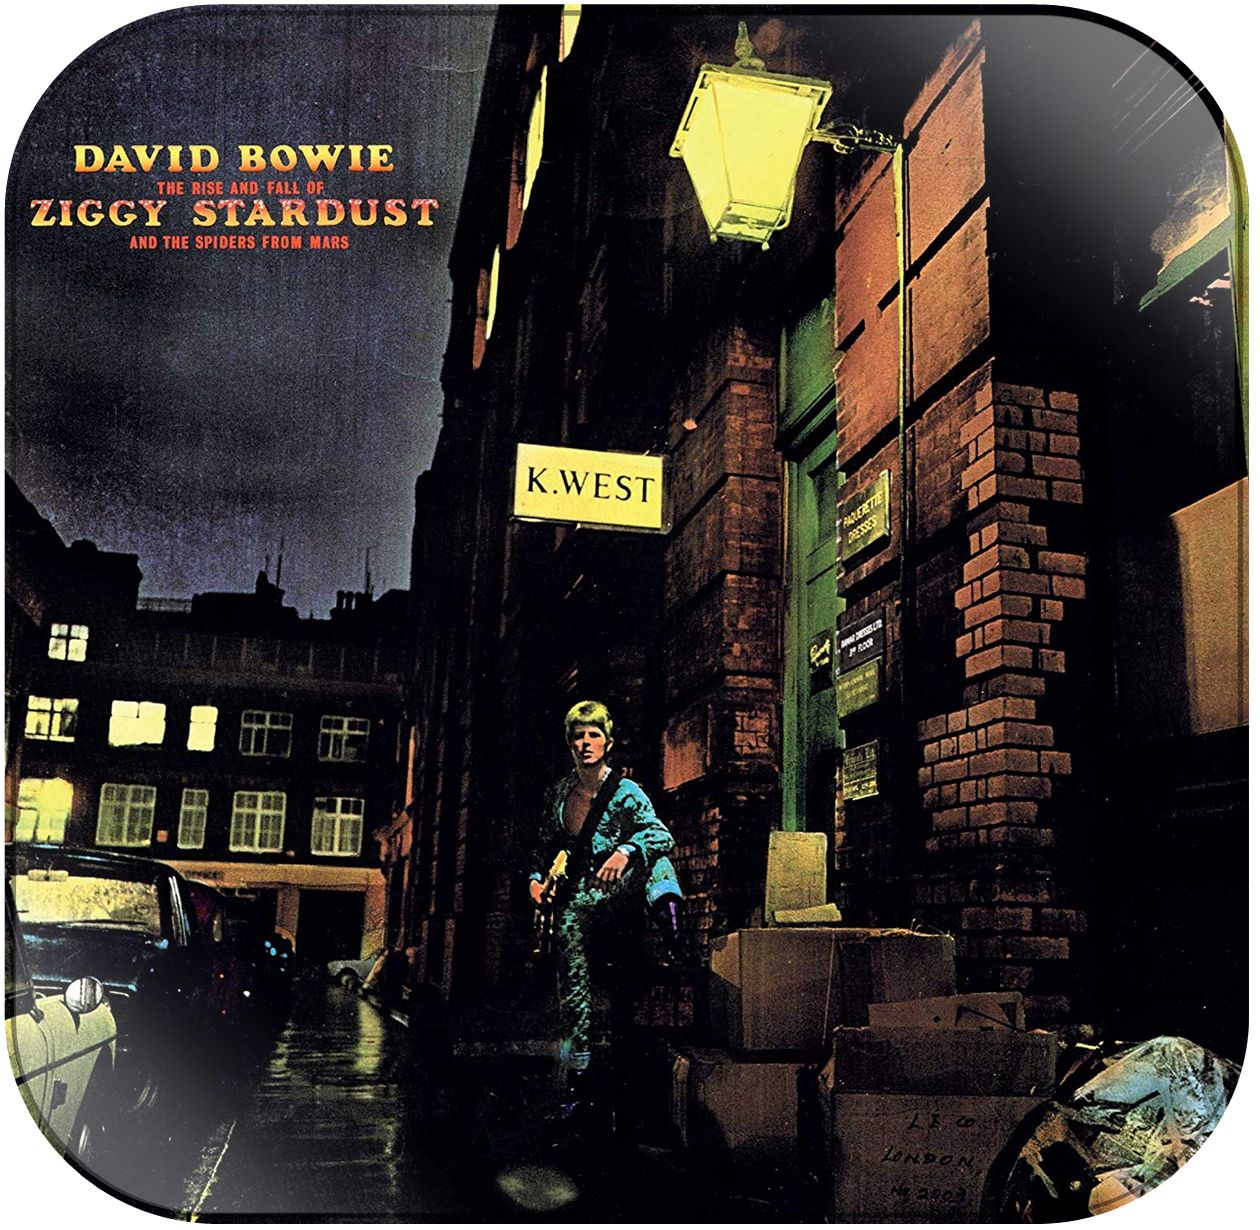 Decal Sticker David Bowie Ziggy Stardust Album Cover